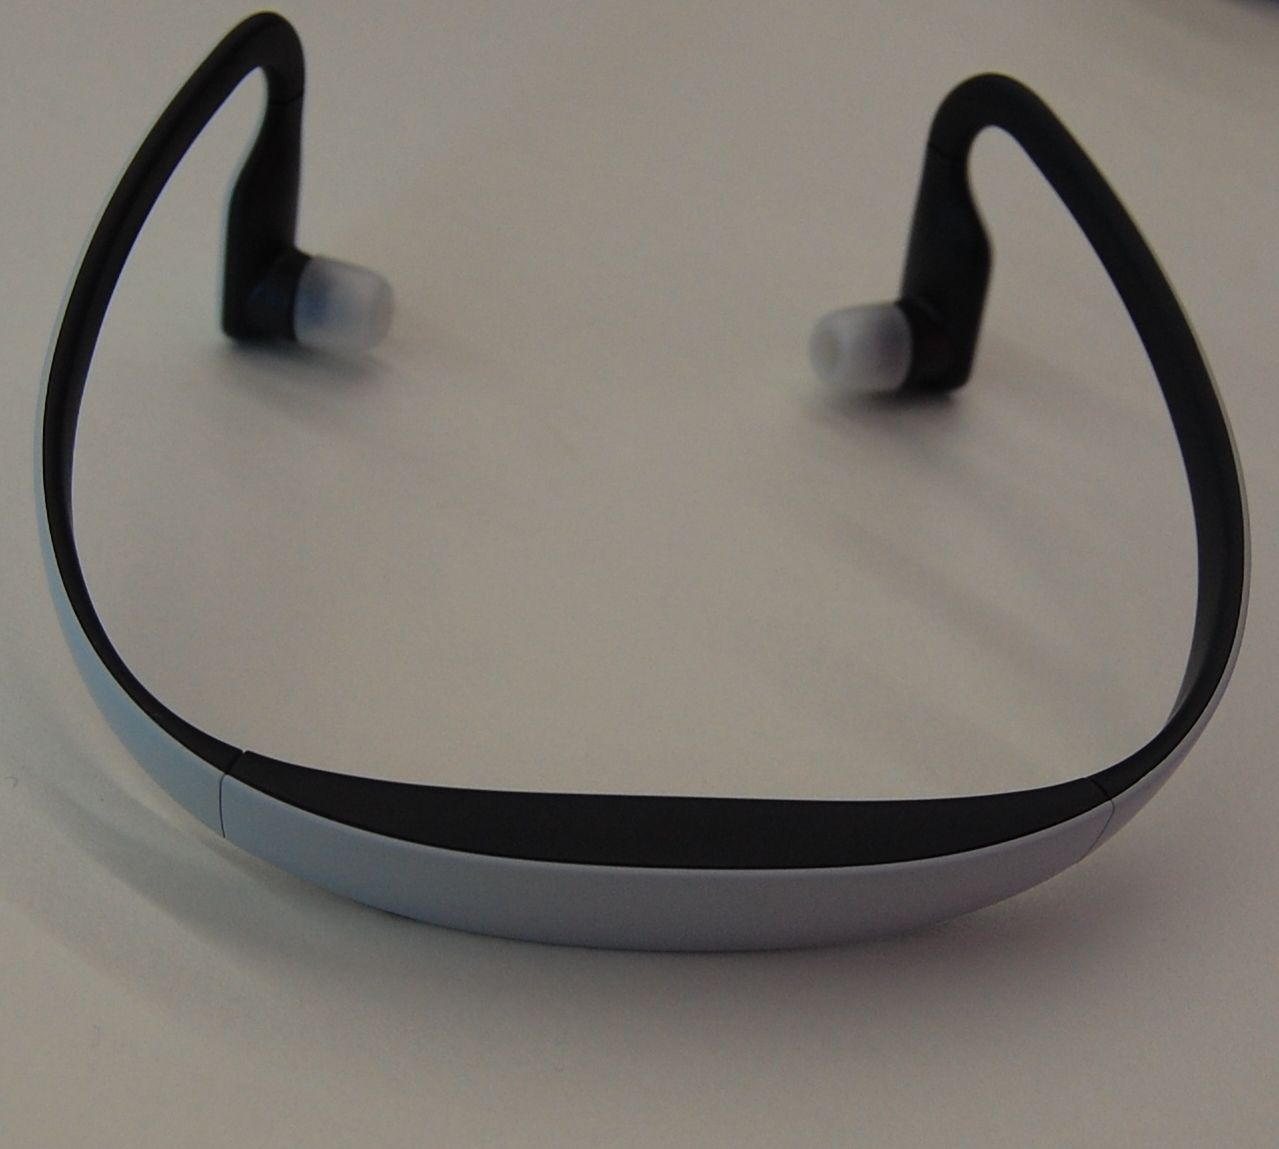 Video Nokia Bluetooth Stereo Headset Bh 505